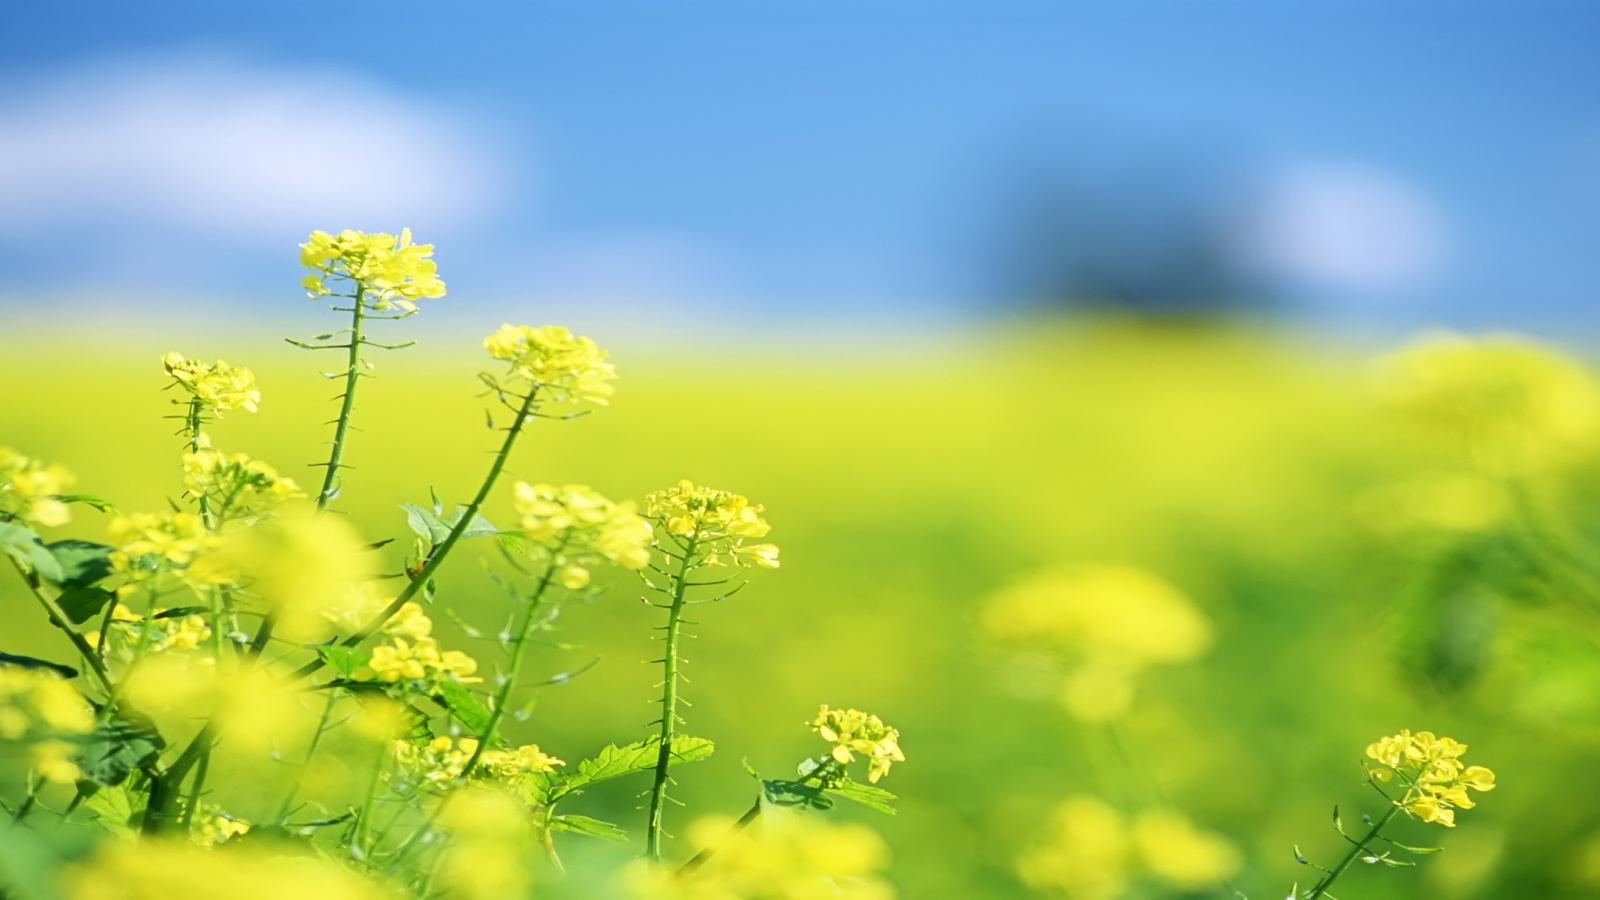 Free Download HD Yellow Flower Field Summer Flower Facebook Timeline Wallpaper